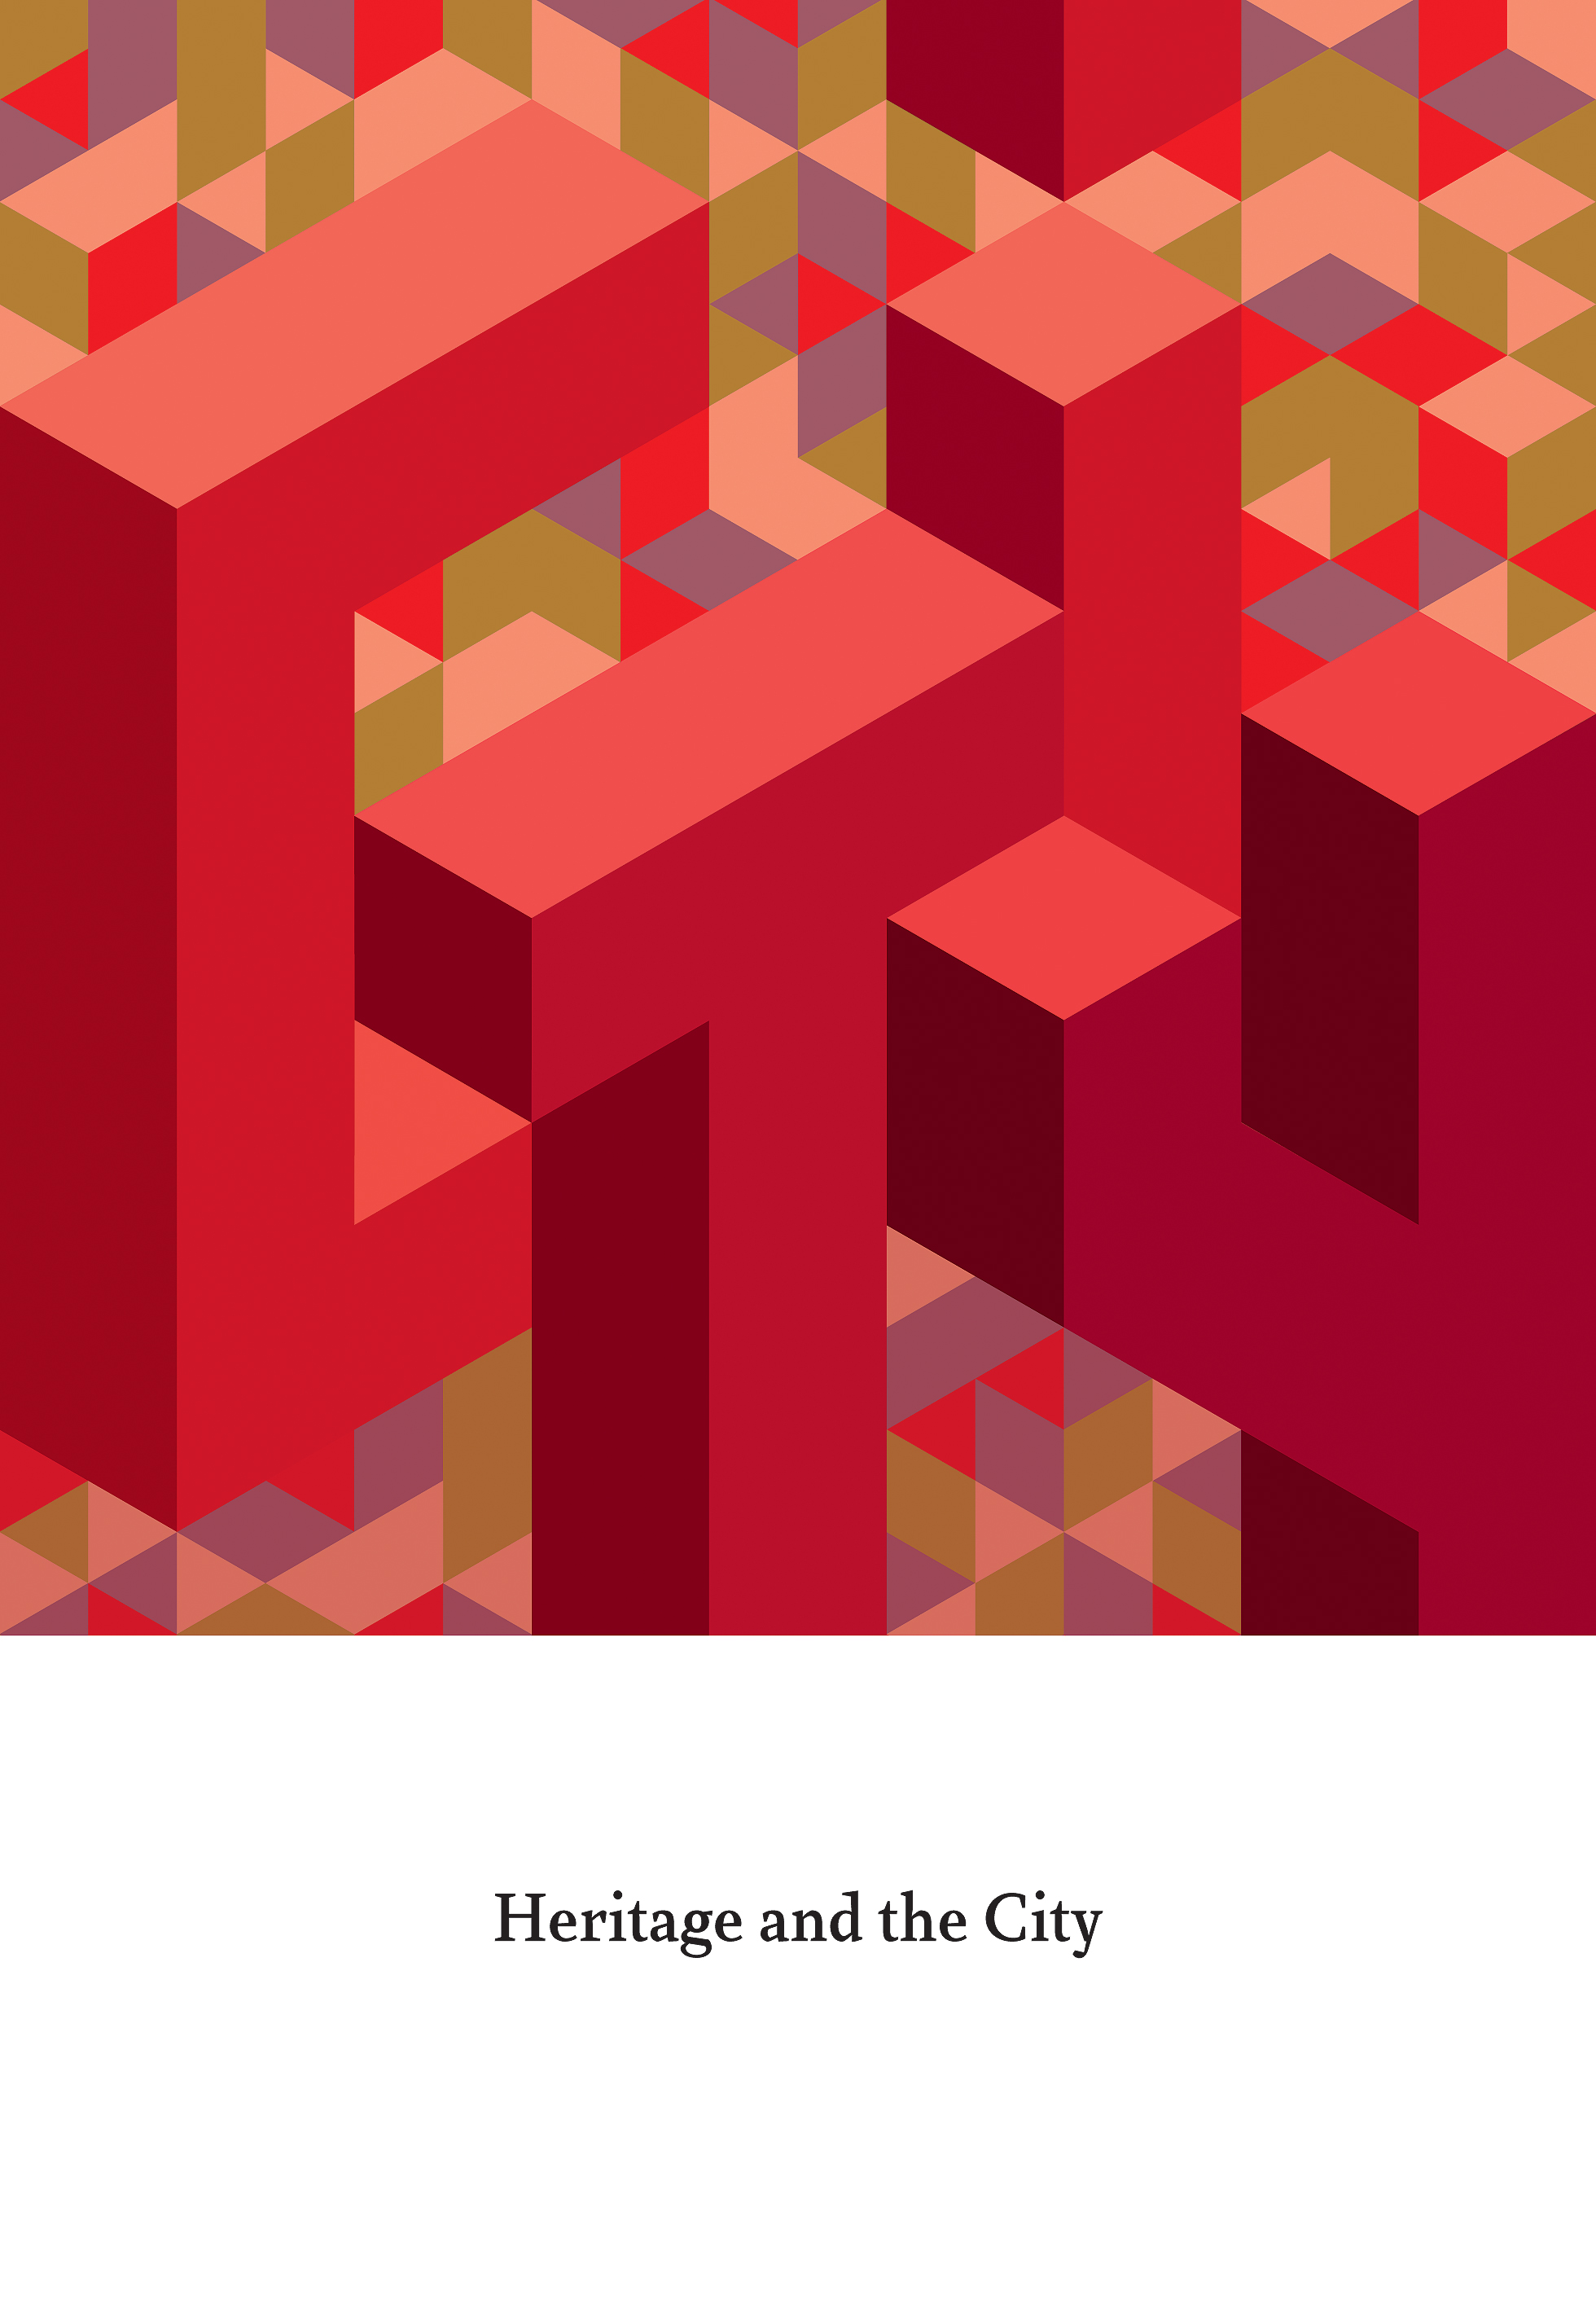 Heritage and the City